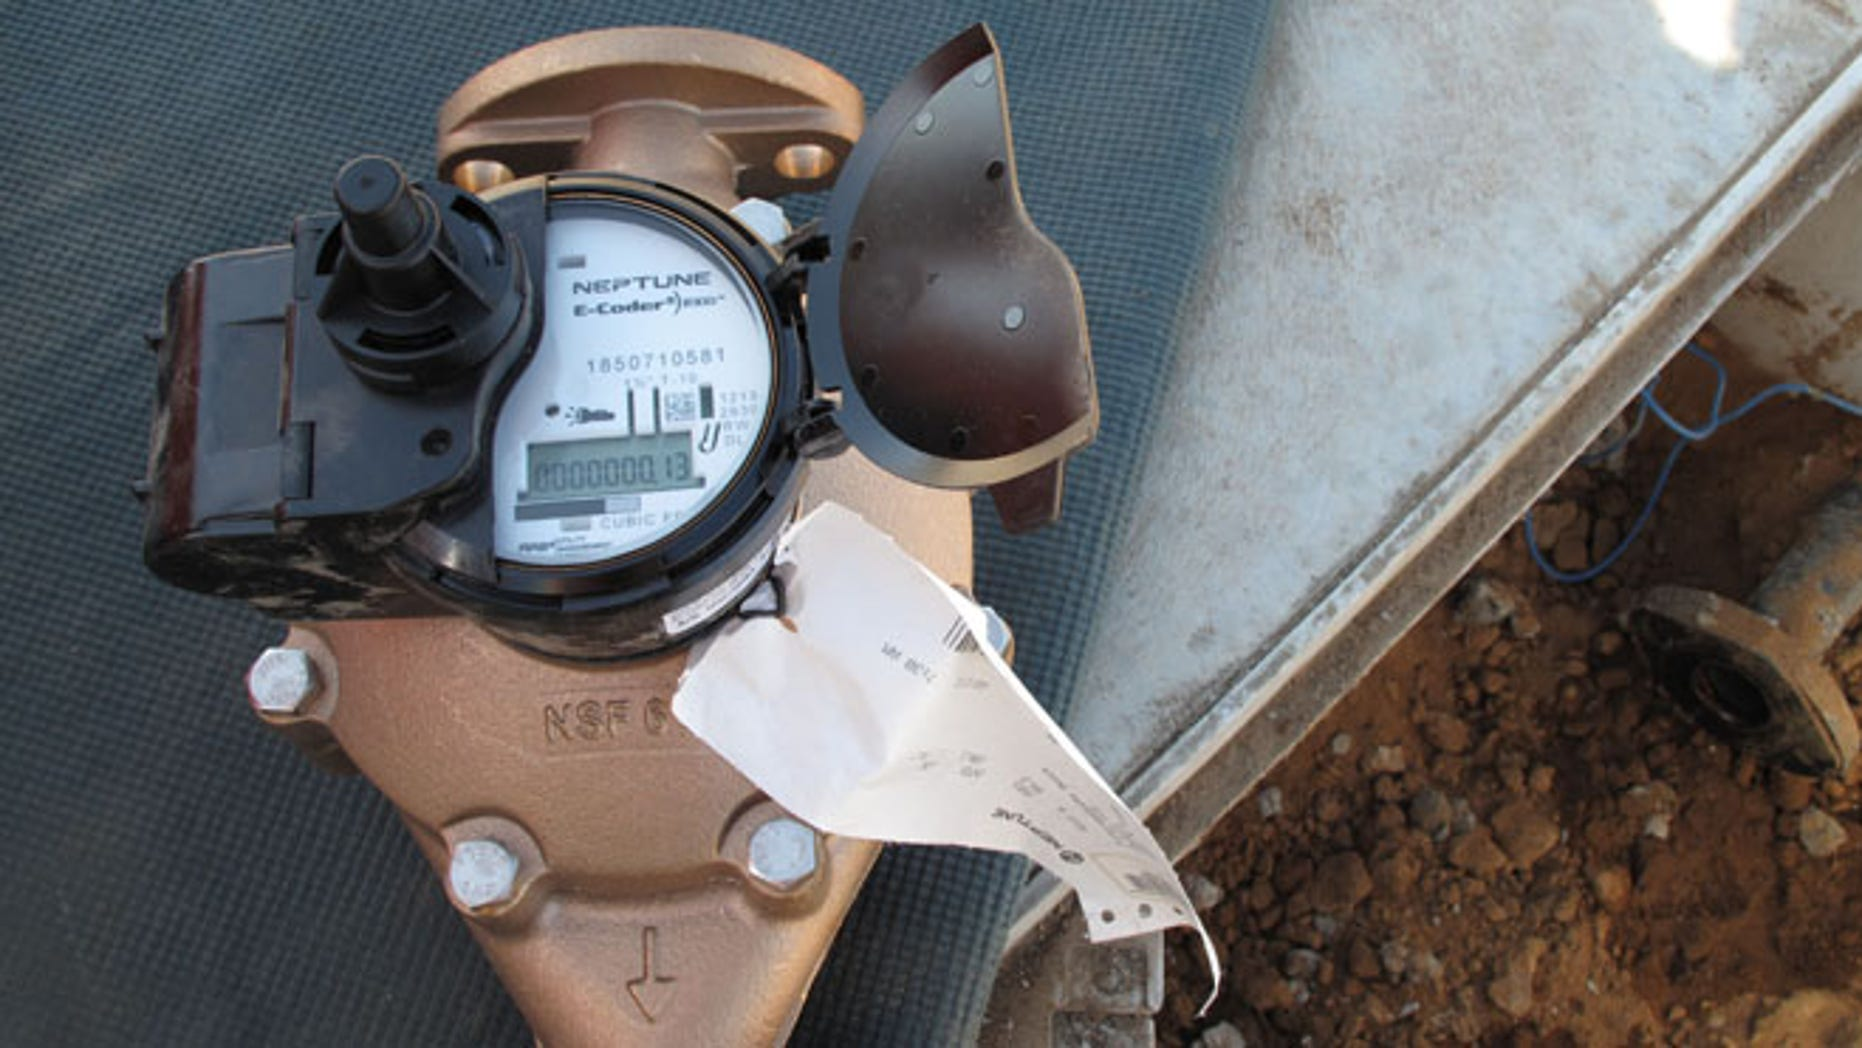 Sept. 4, 2014: In this photo a water meter being installed at the site of a new home under construction in Fresno, Calif.